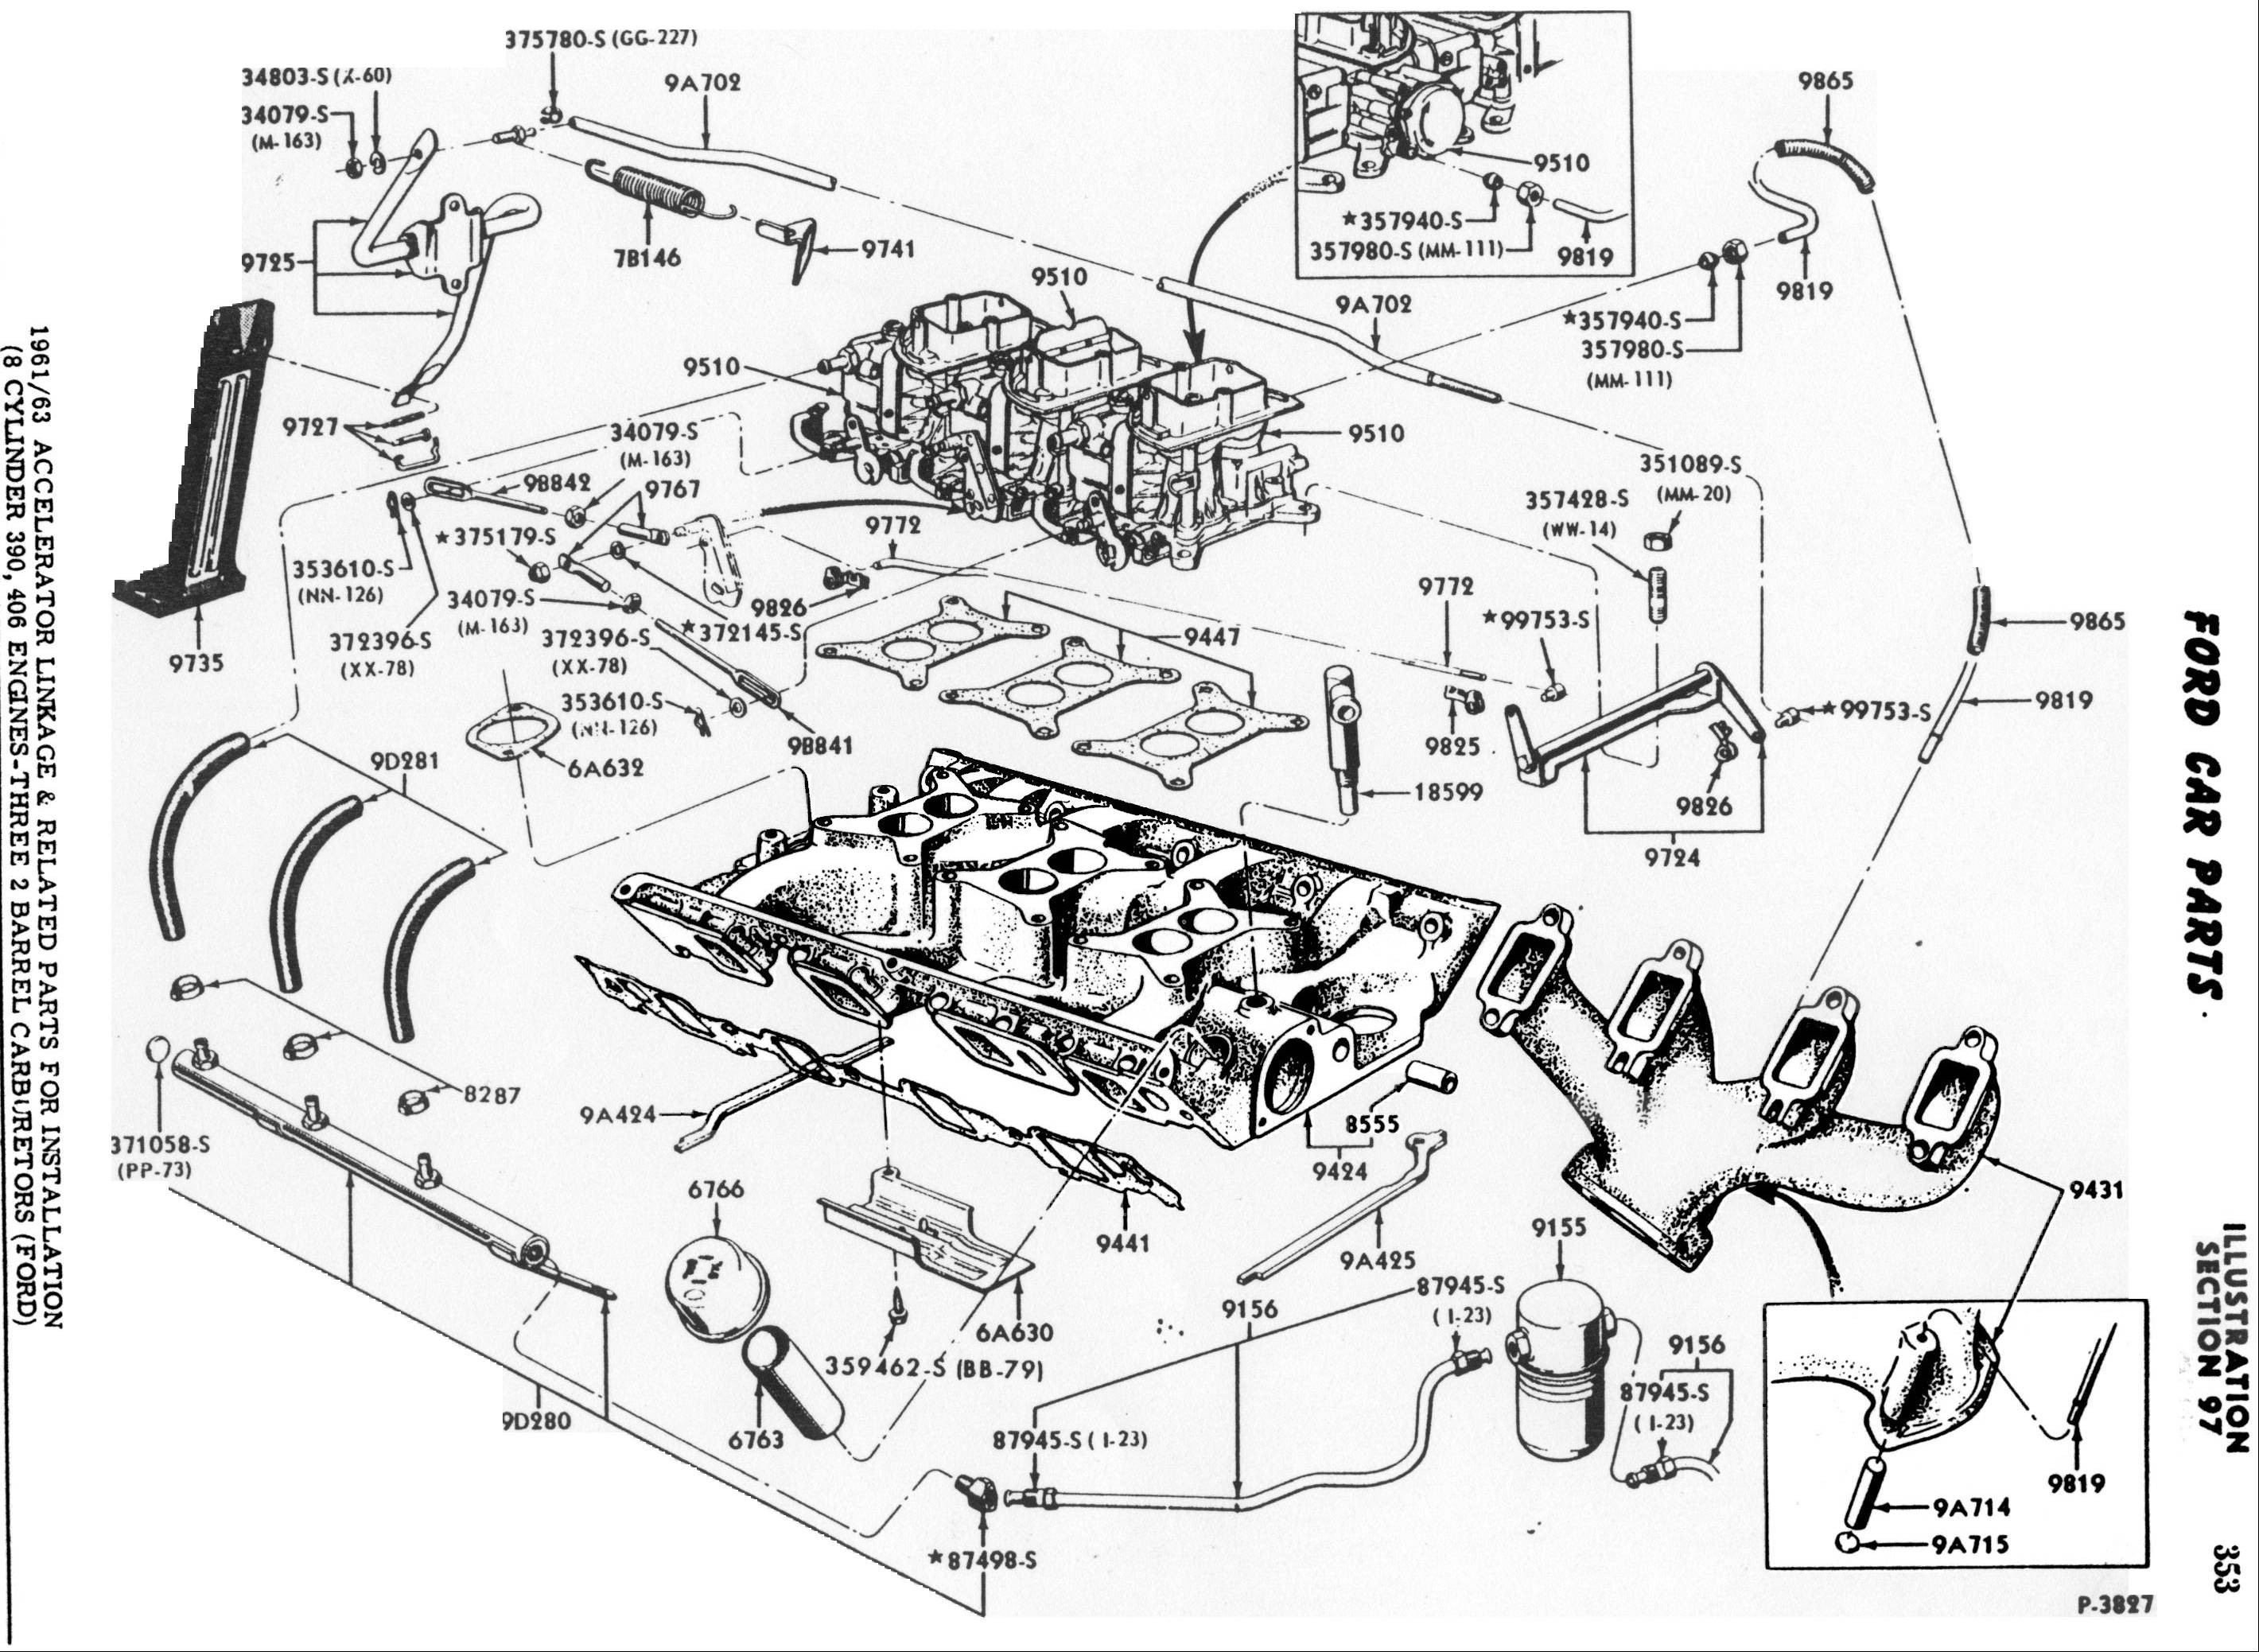 1990 honda crx fuse box diagram